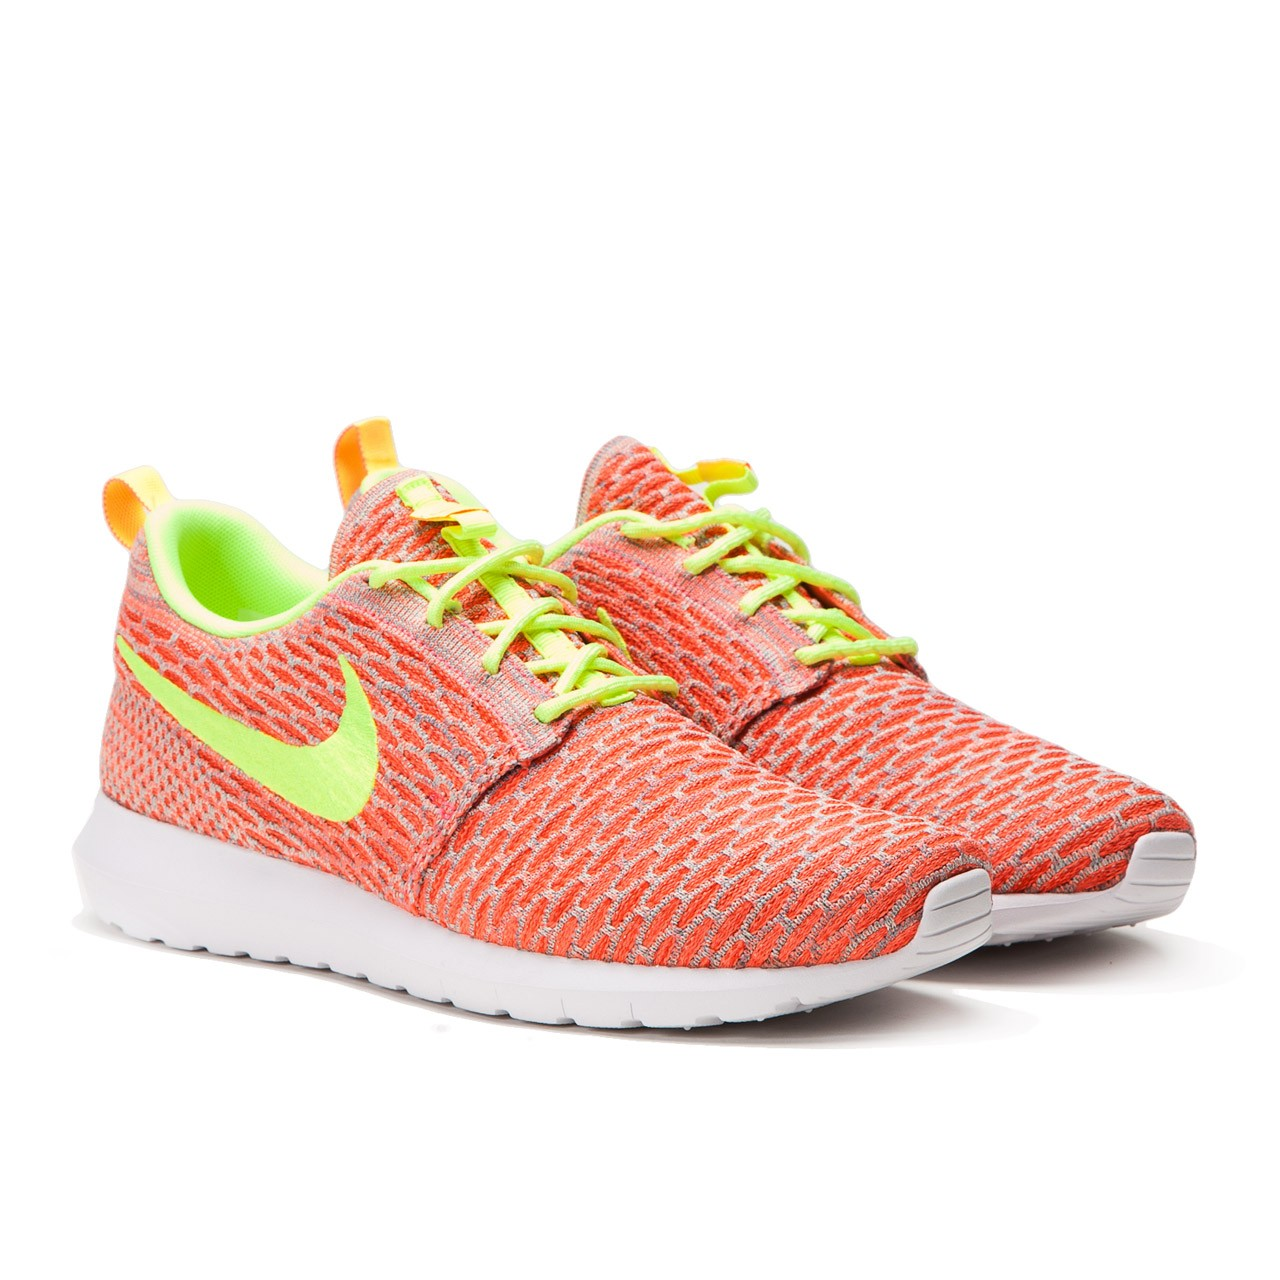 nike flyknit roshe run hot lava volt orange. Black Bedroom Furniture Sets. Home Design Ideas